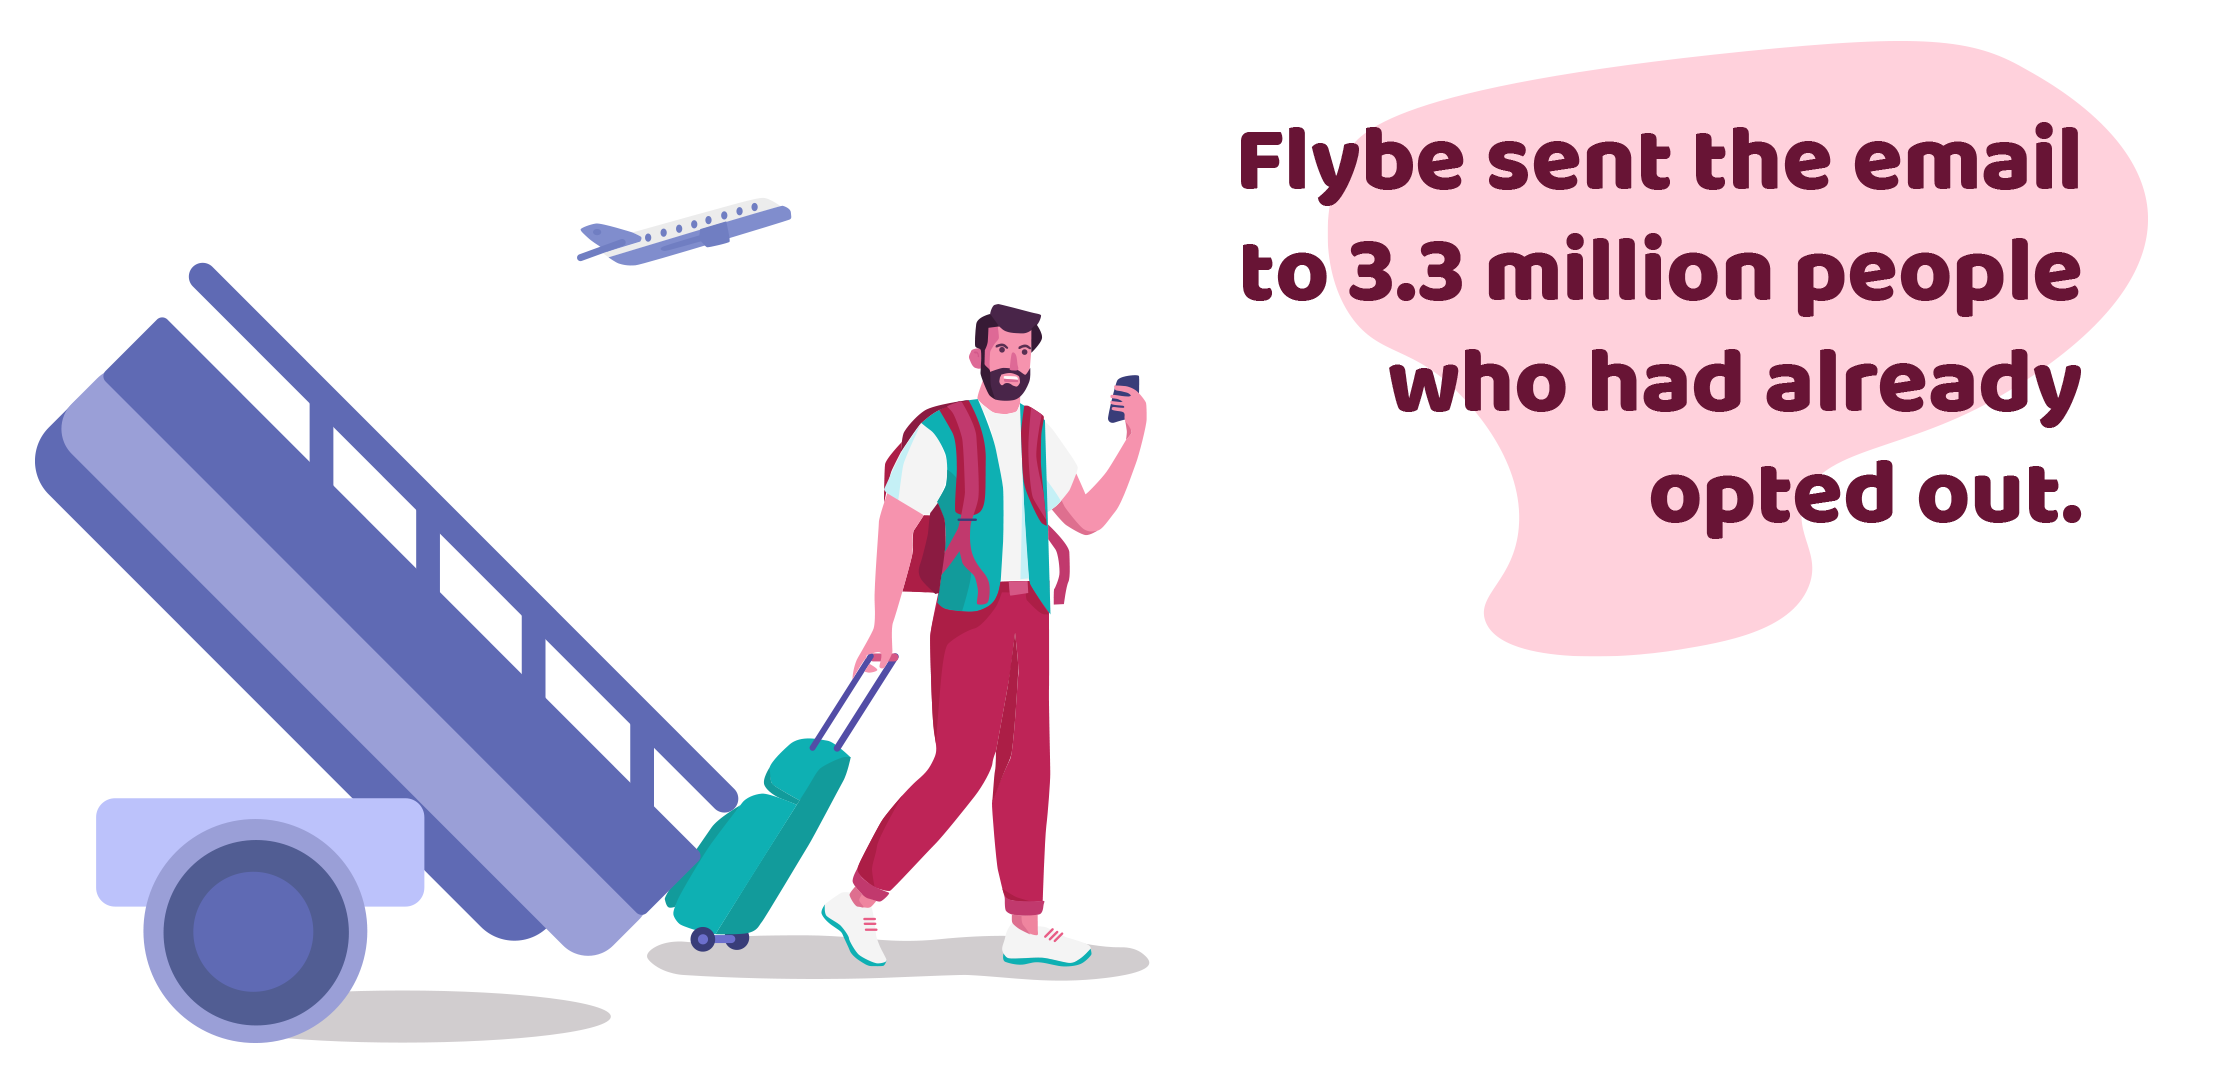 GDPR fines for Flybe